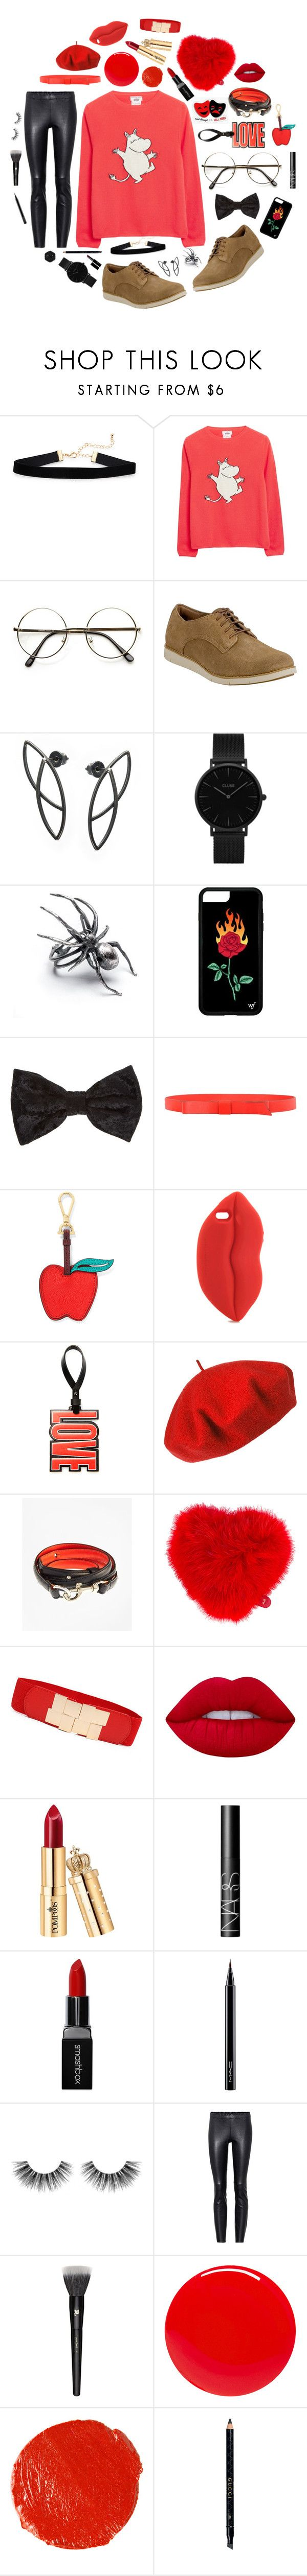 """""""Loafers - Red - Black"""" by laurenrogers357 ❤ liked on Polyvore featuring Timberland, CLUSE, Marni, Draper James, STELLA McCARTNEY, Givenchy, Betmar, Brooks Brothers, Anya Hindmarch and Lime Crime"""